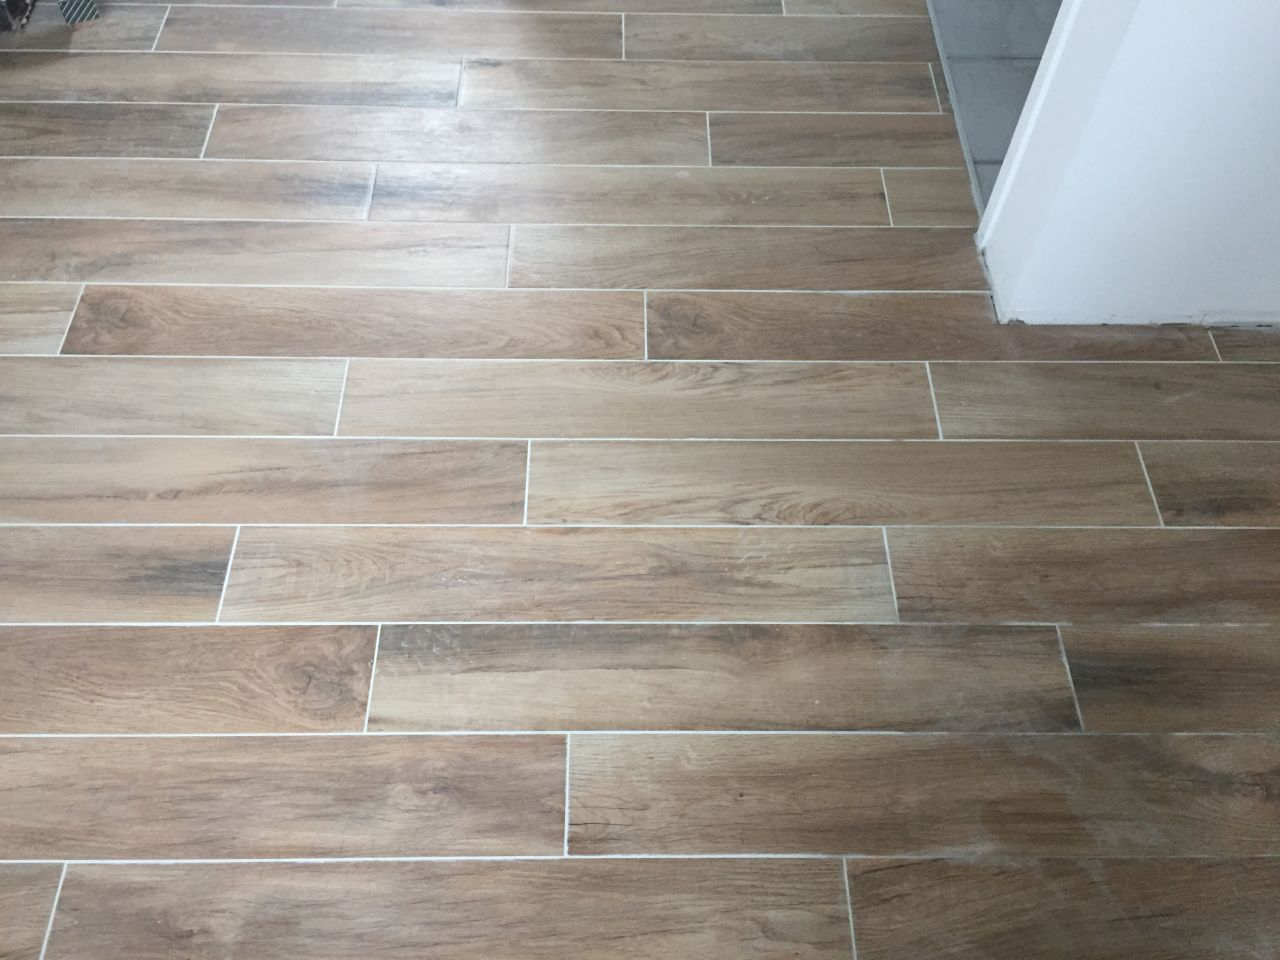 Photo maison carrelage imitation parquet for Carrelage parquet